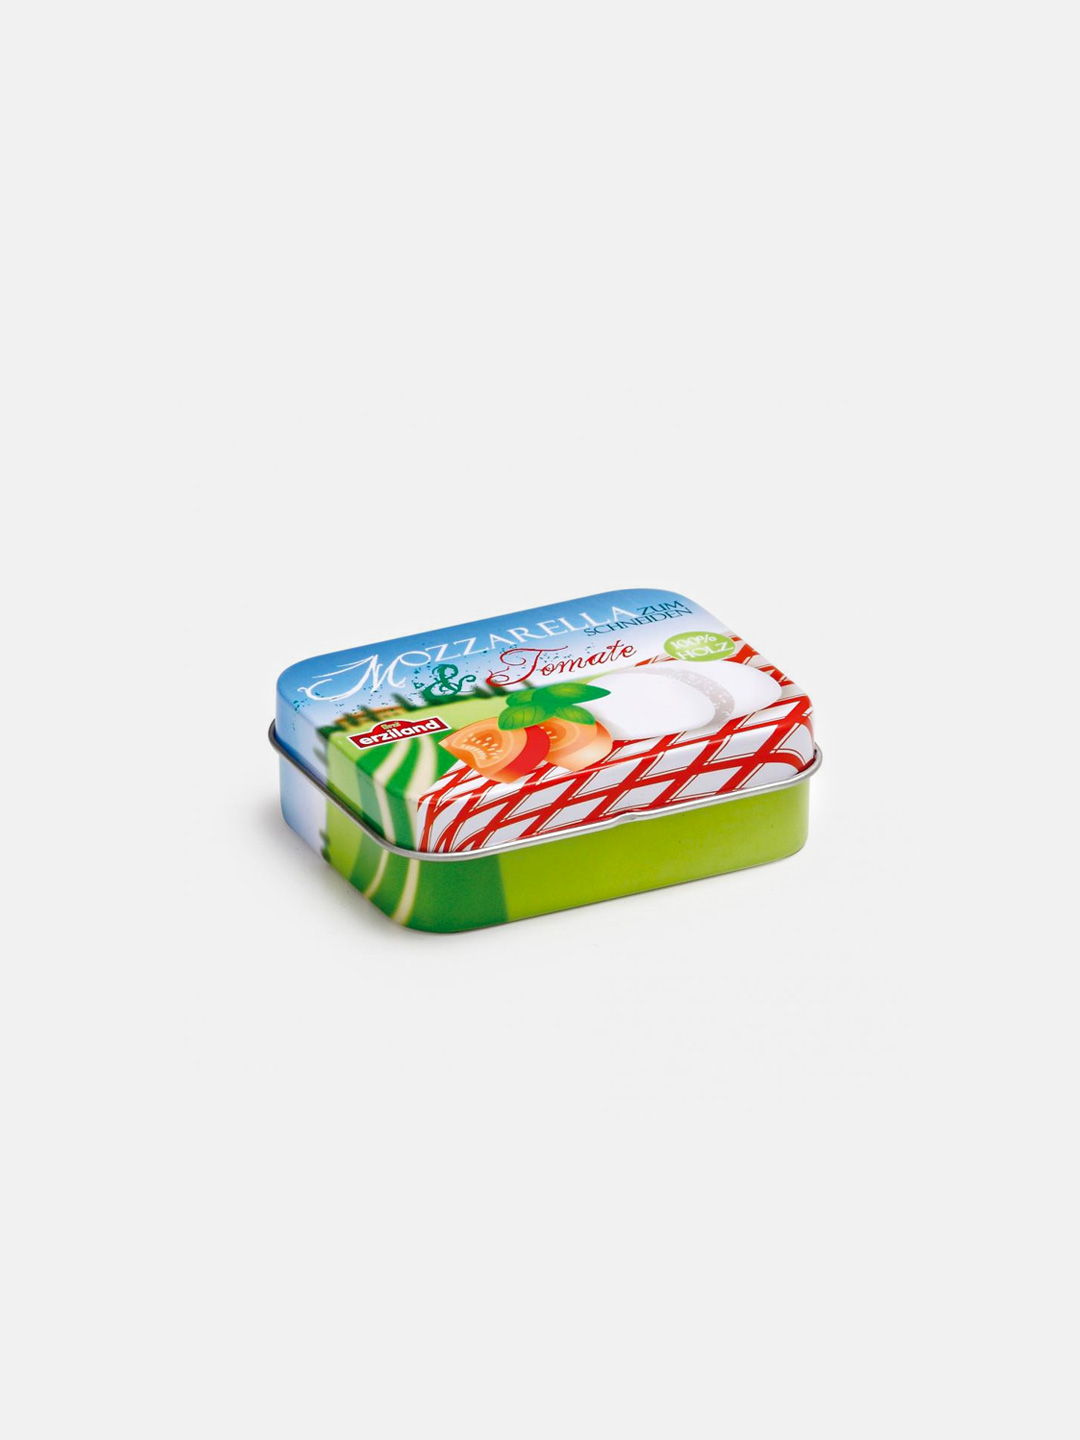 Wooden Food - Mozzarella and Tomato in a Tin